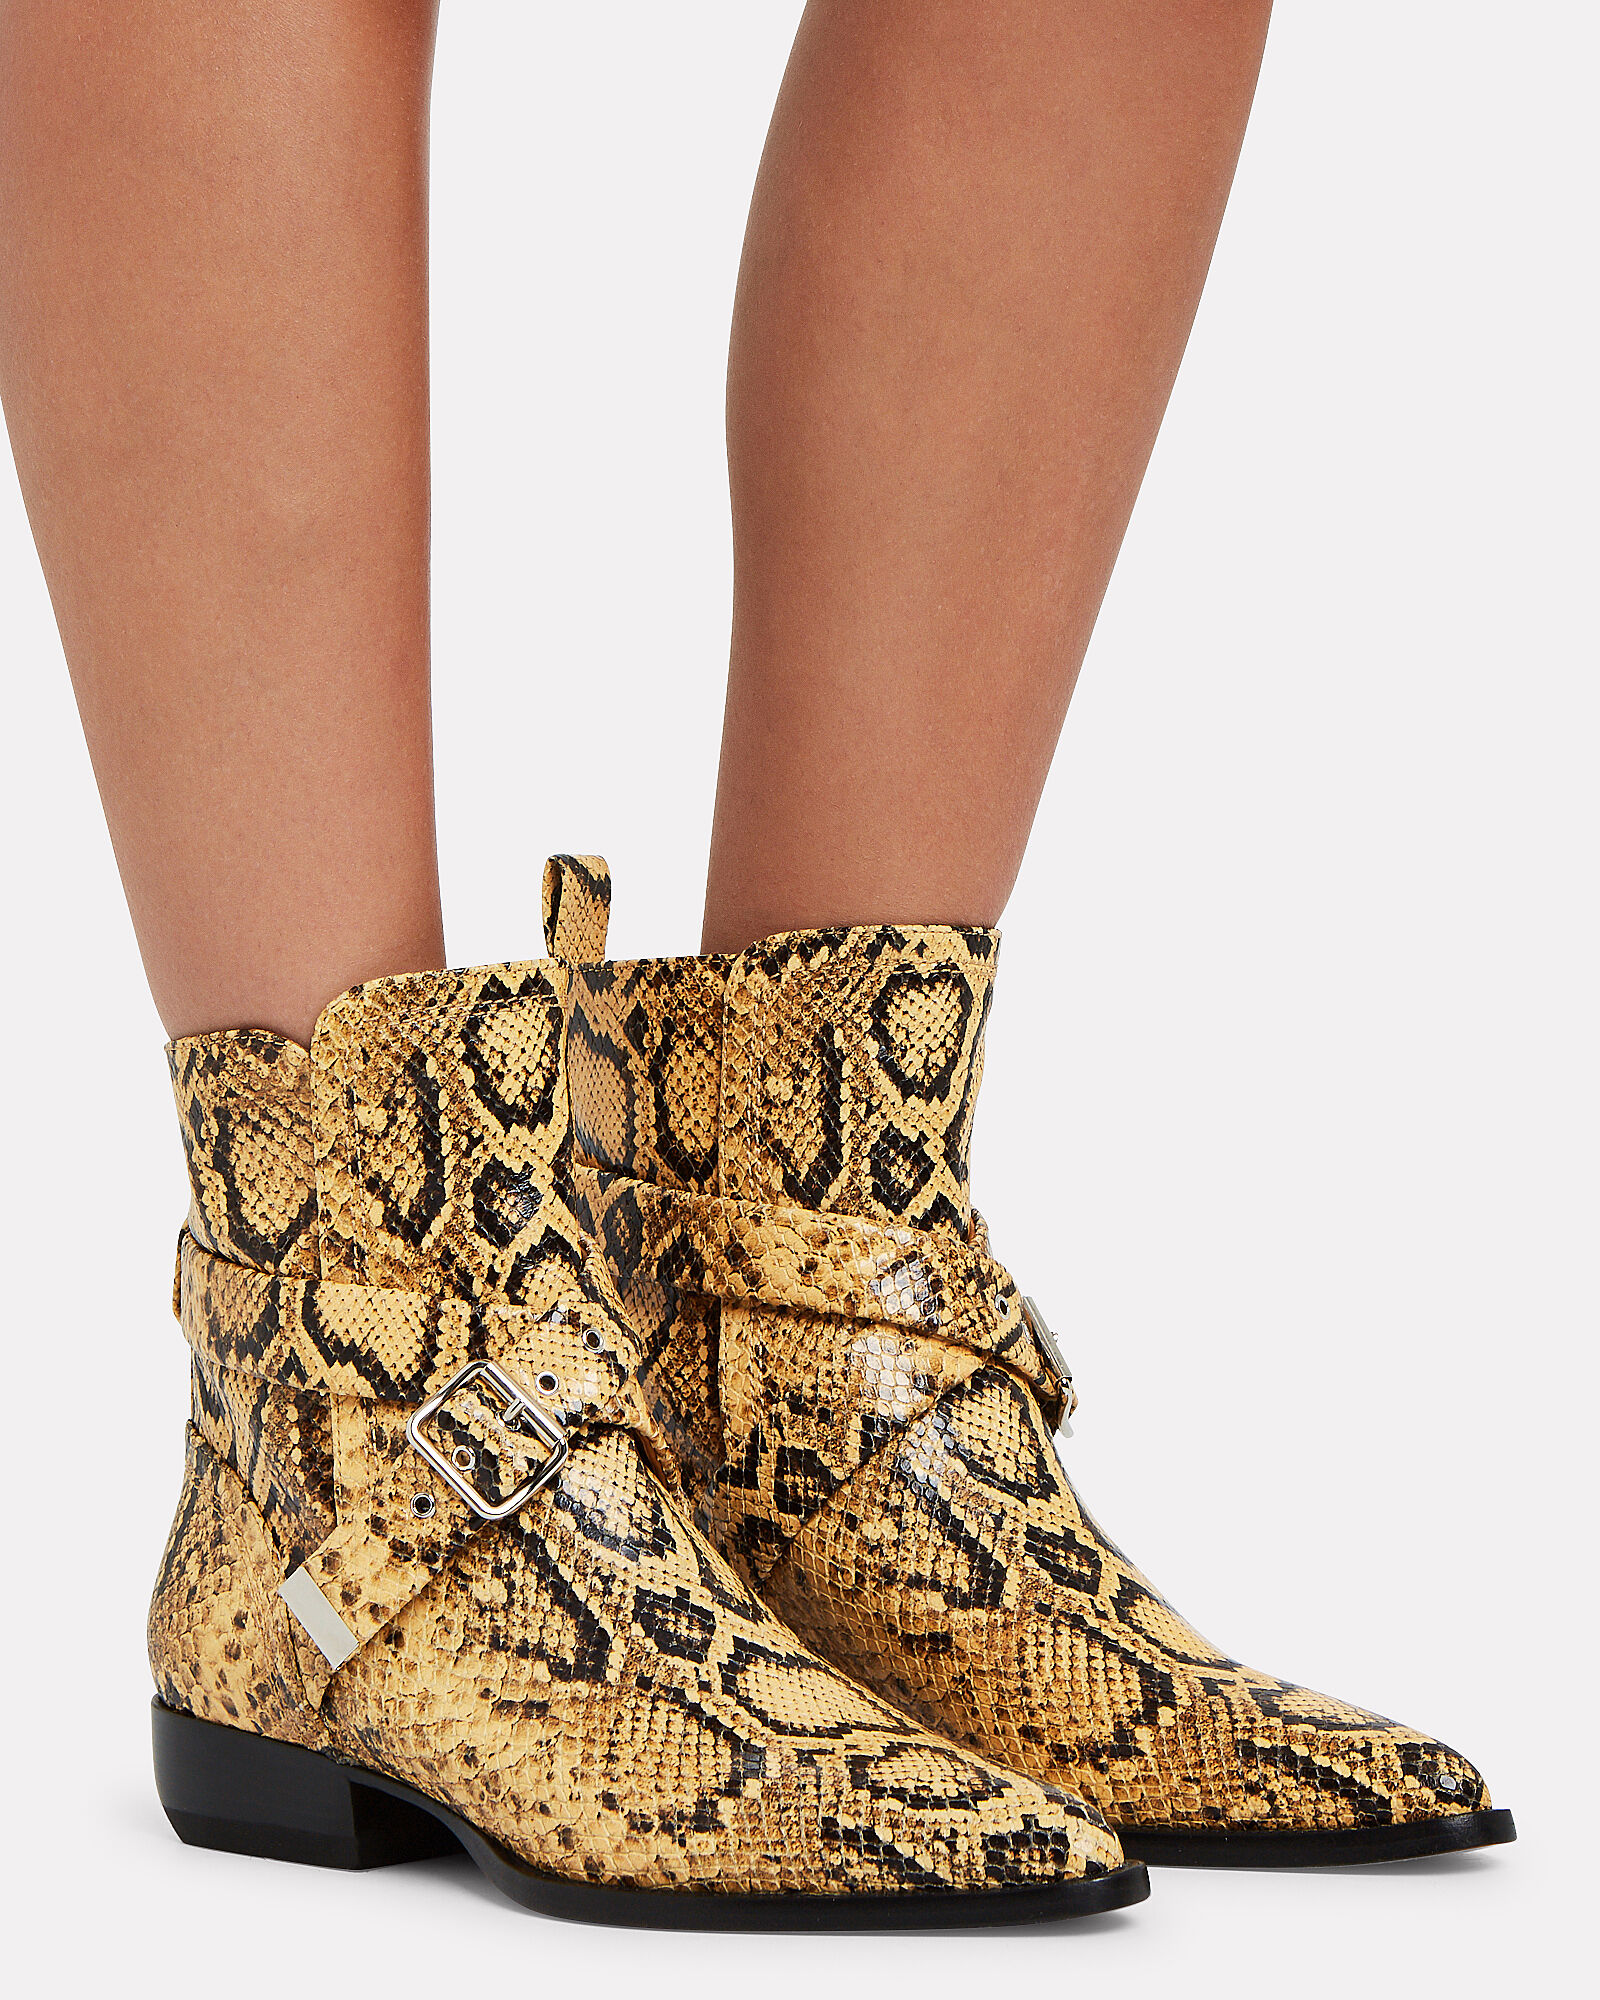 Rylee Lace-Up Leather Ankle Boots, YELLOW/BLACK, hi-res